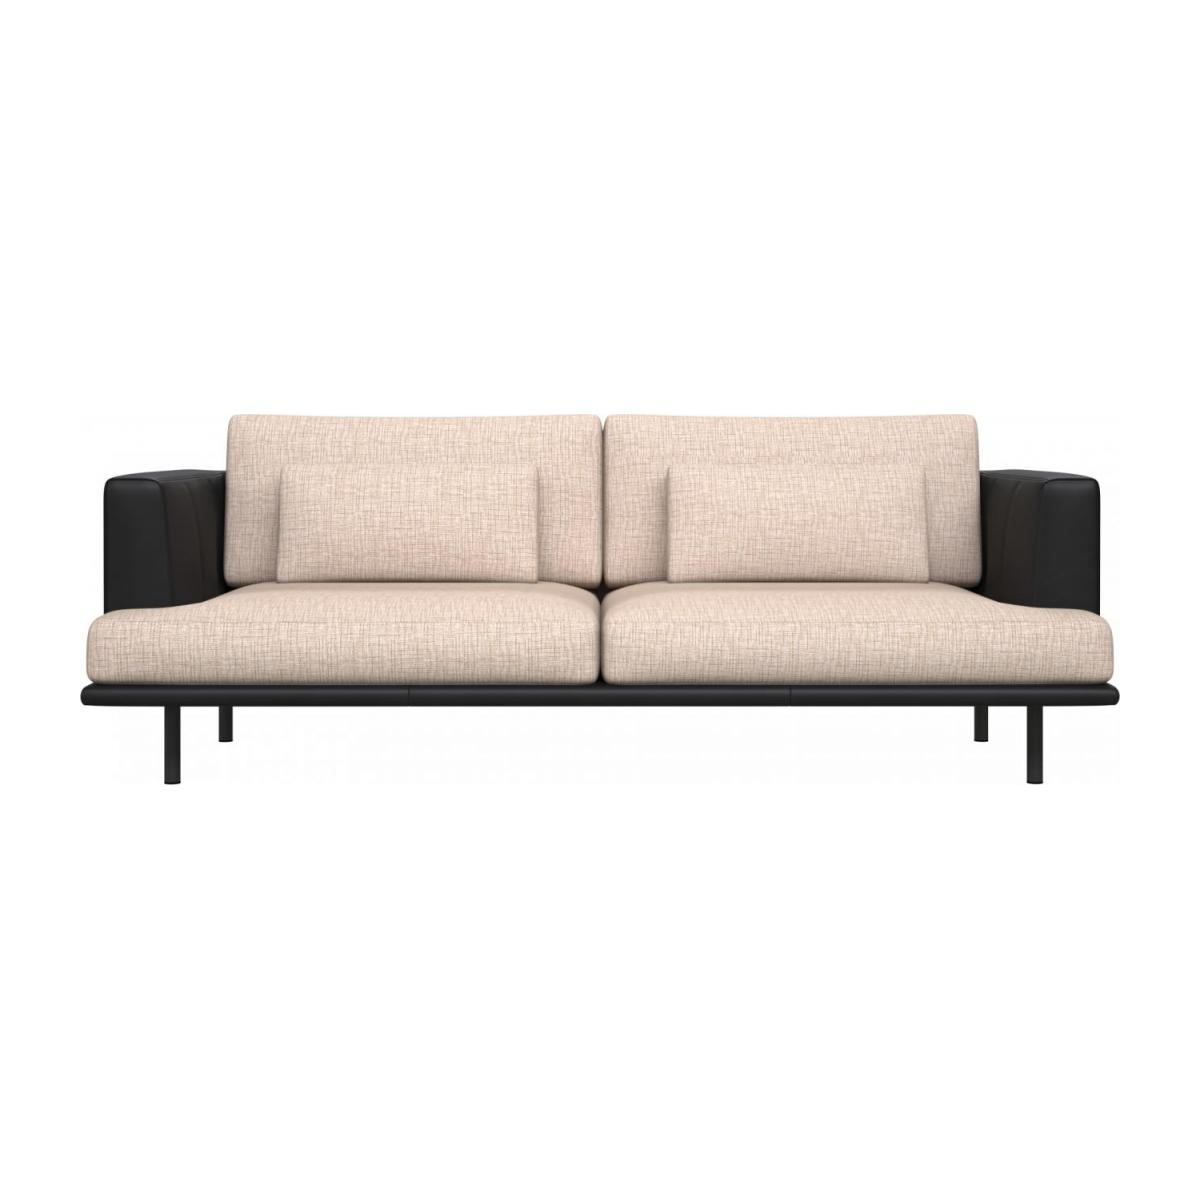 3 seater sofa in Ancio fabric, nature with base and armrests in black leather n°2